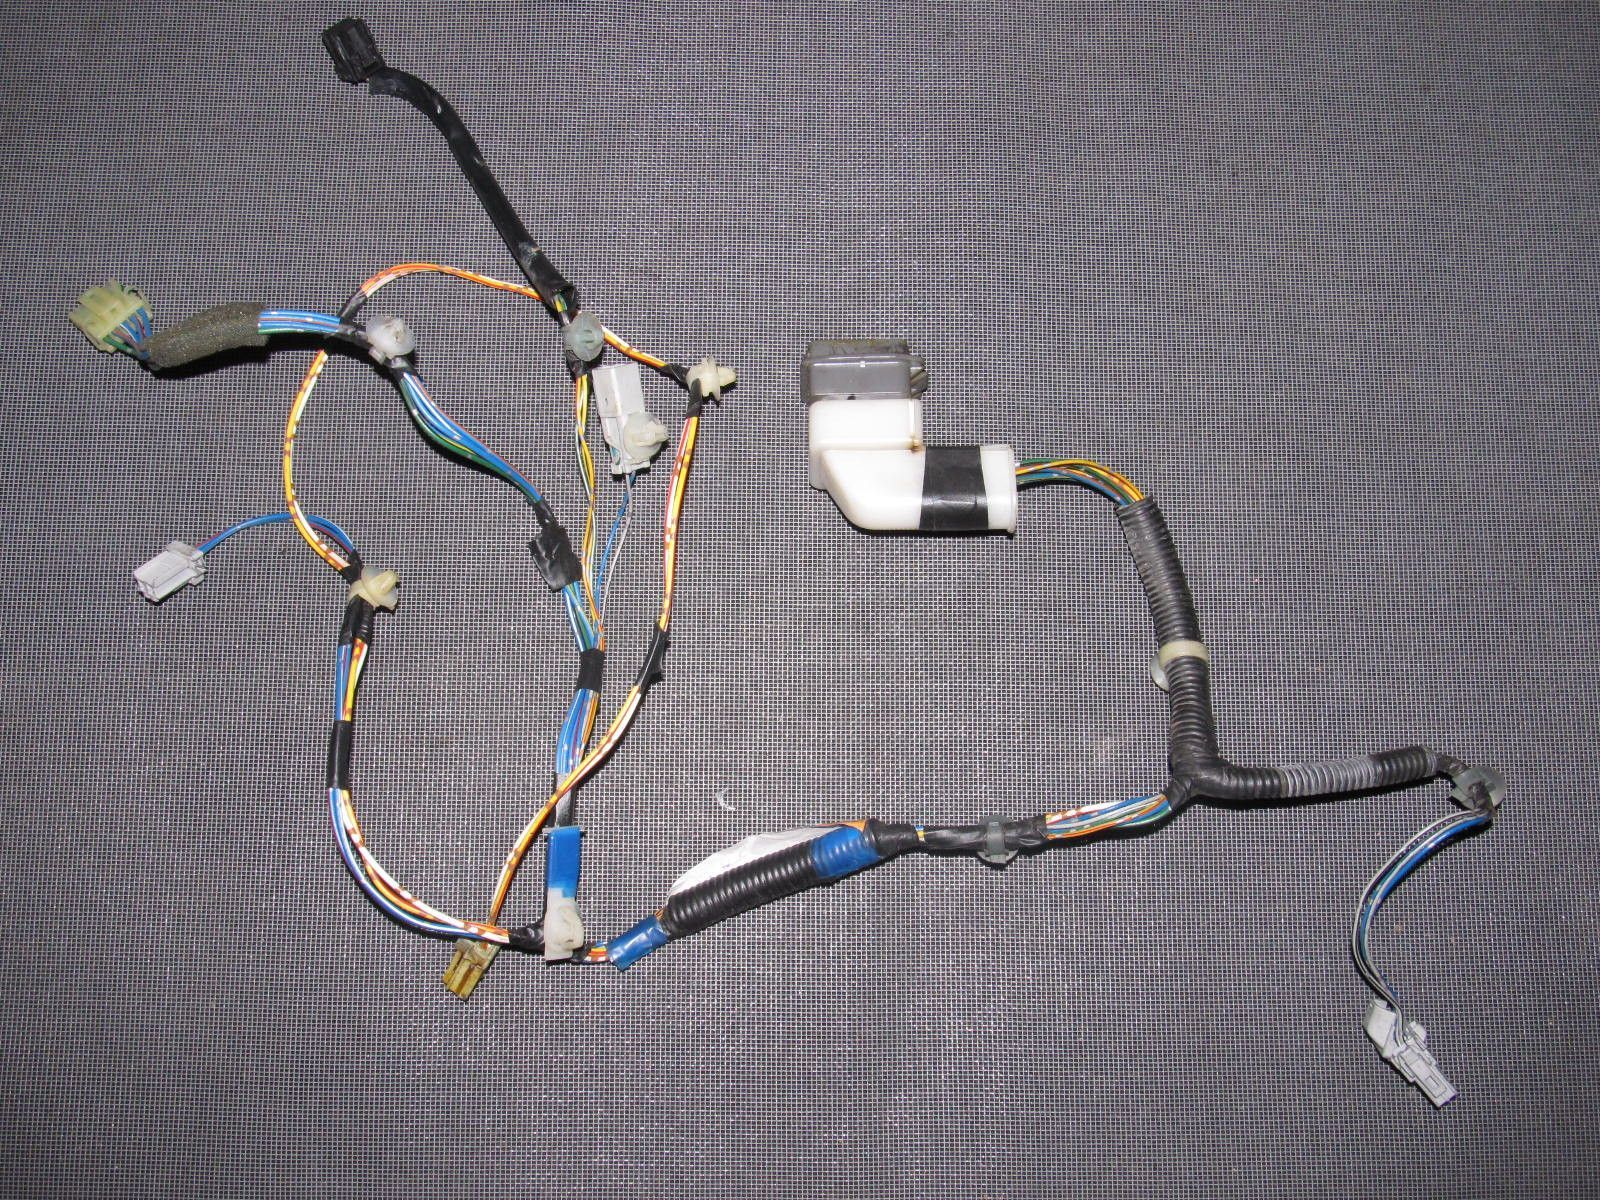 3a666c08d3a905aa050d56d282e44d63 96 97 98 99 00 honda civic oem door wiring harness right honda door wiring harness at n-0.co